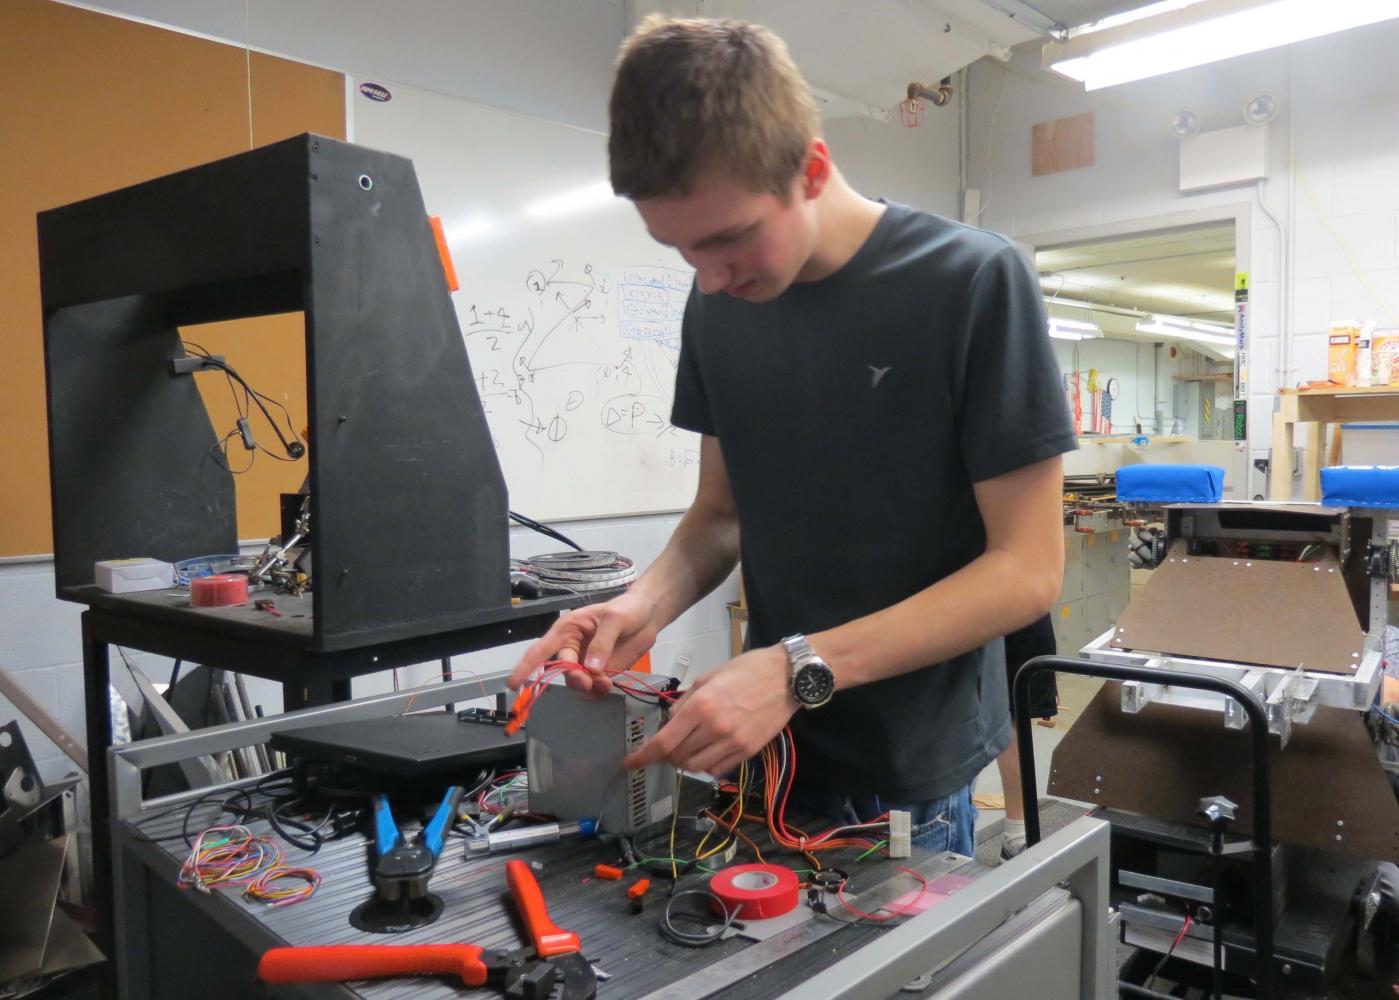 Junior captain, George O'Hare, wires a control module in preparation for Sections during a work day Mar. 24.